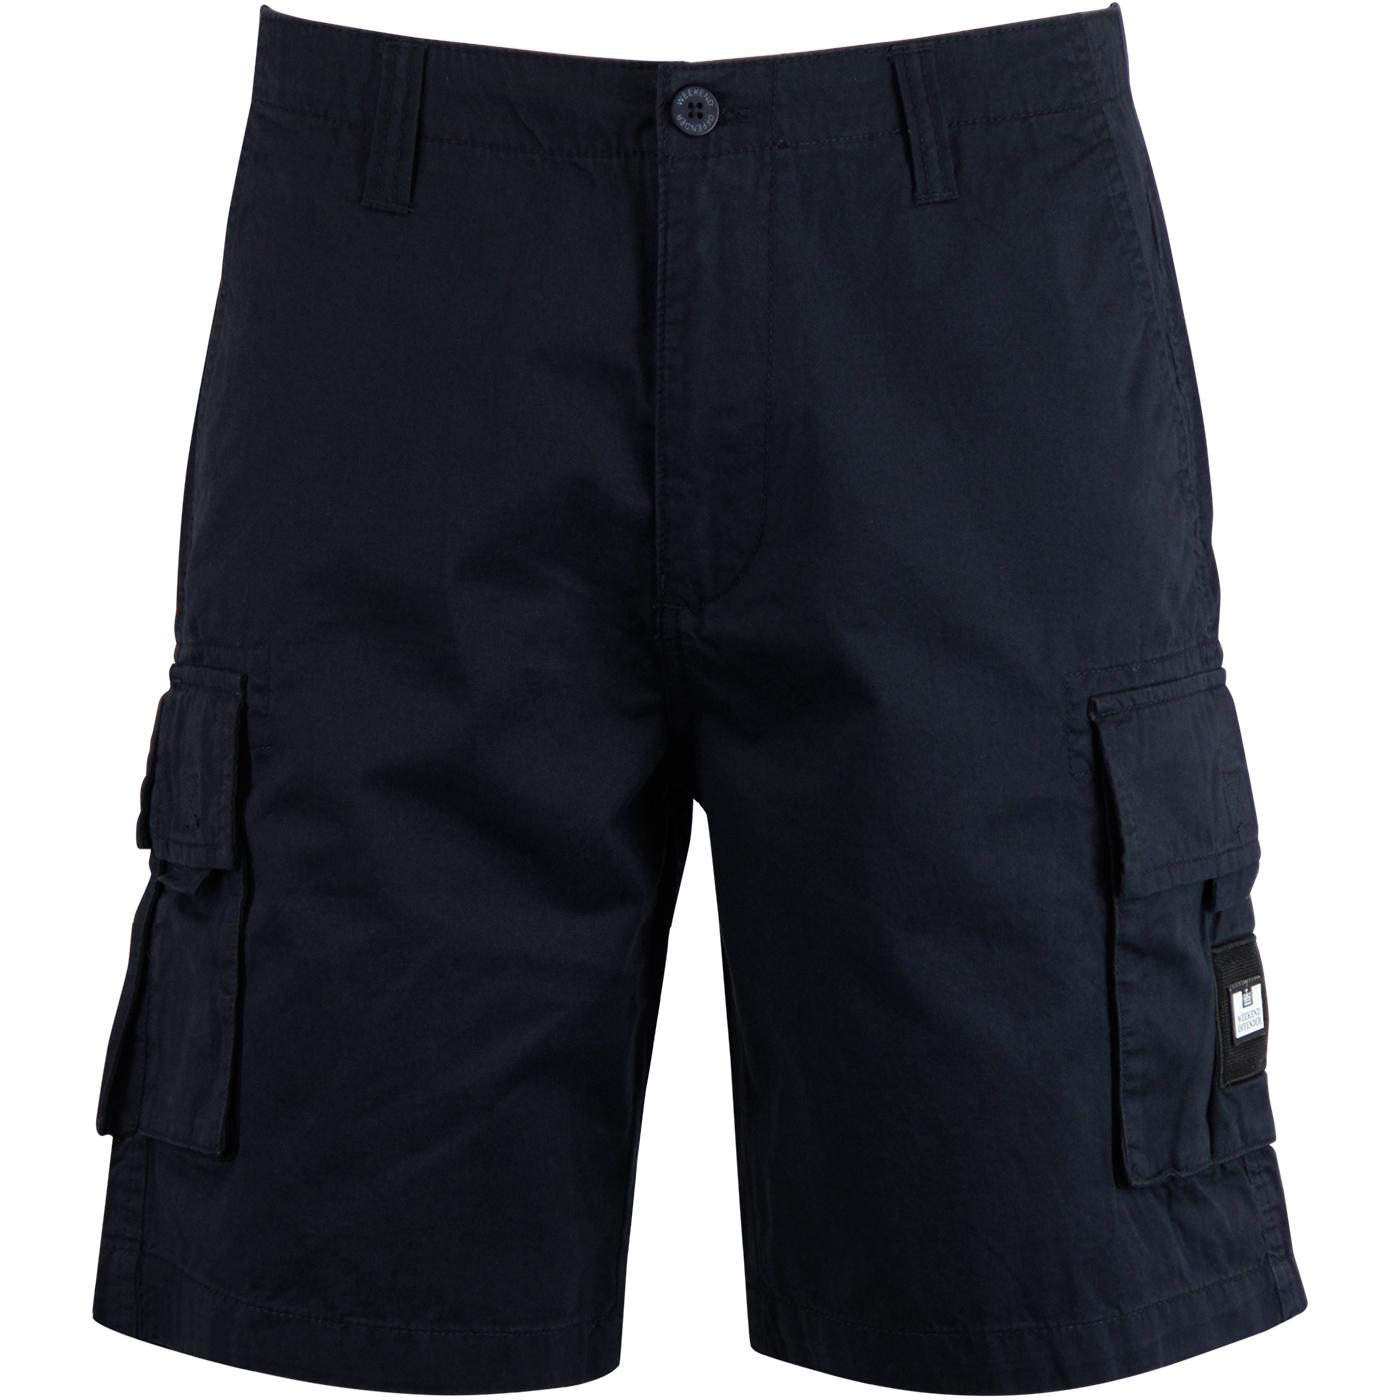 Mascia WEEKEND OFFENDER Retro Combat Shorts (Navy)